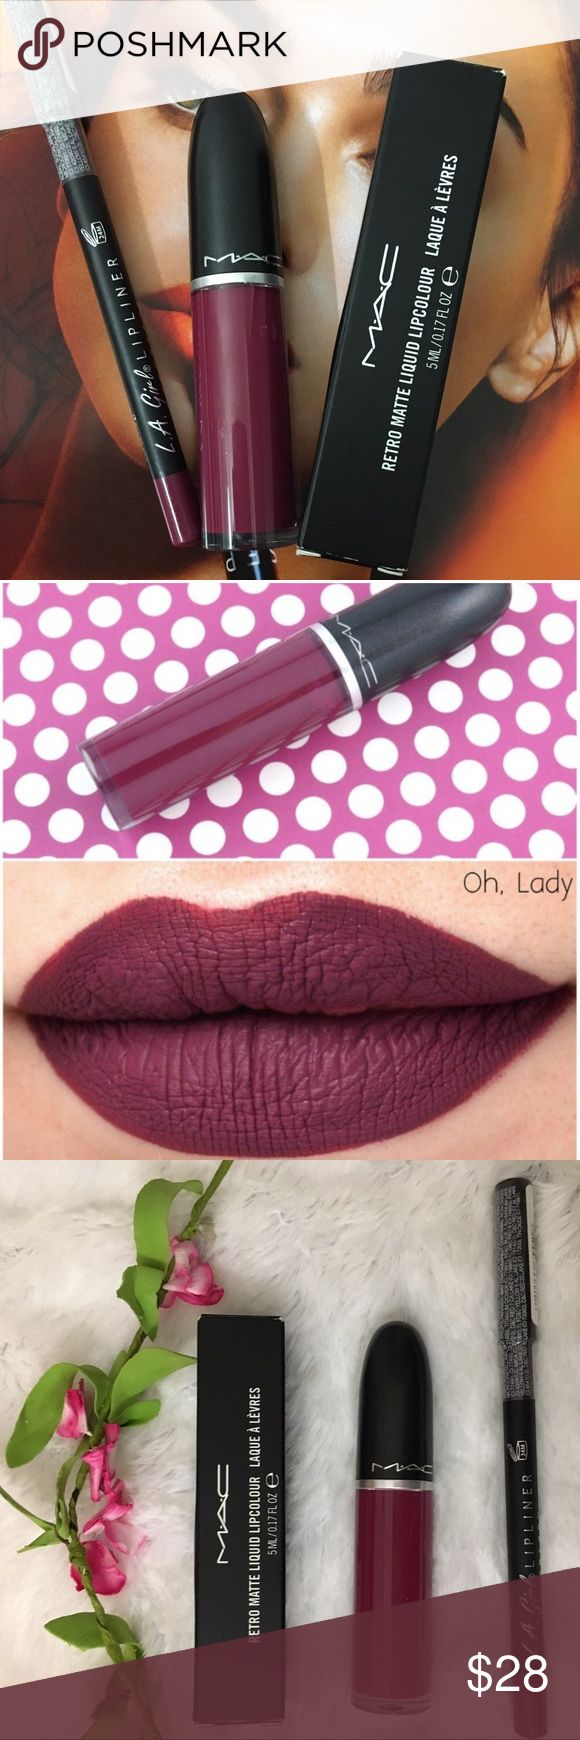 "✨Mac retro Matte liquid lipstick in ""oh lady "" w Authentic bnib retro oh lady ! With L. A Girls lipliner in raspberry ! Perfect combo ! I use this duo daily ! Love love ! I think just about all skin tones could where this shade ! Comes with a gift ✨✨ MAC Cosmetics Makeup Lipstick"